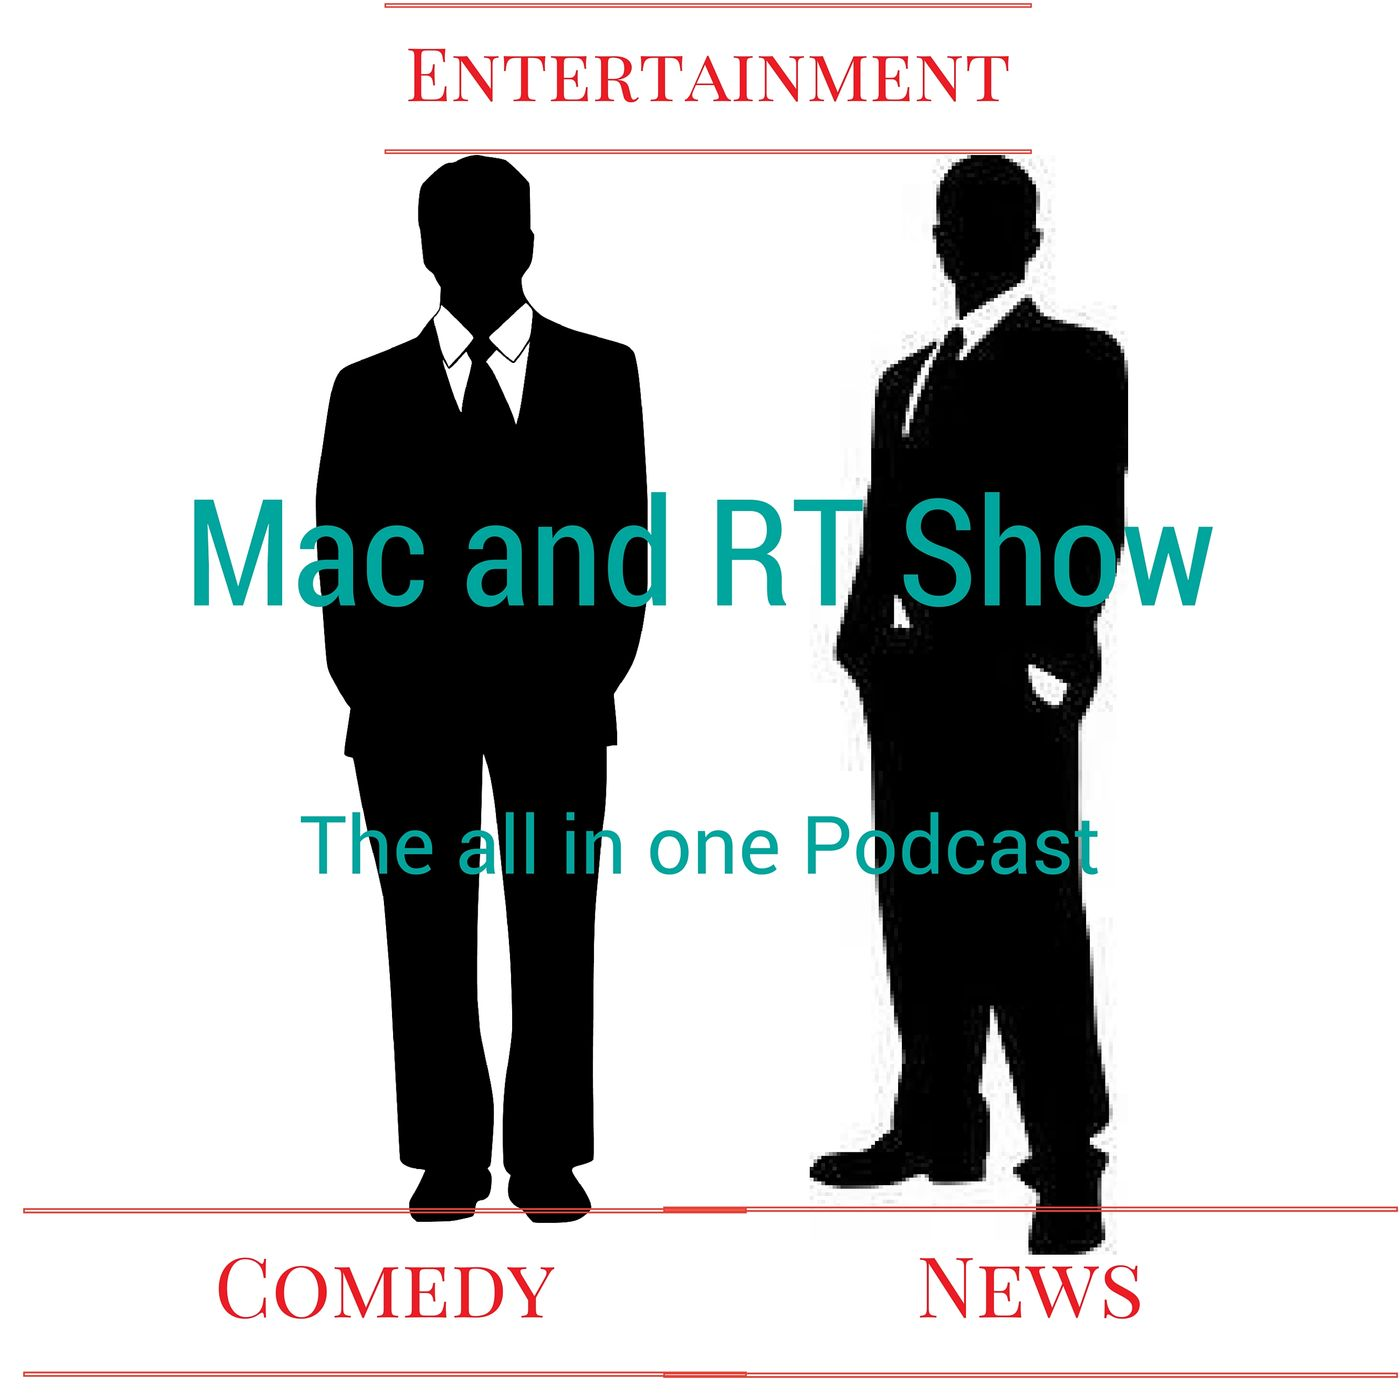 Mac and RT show episodes